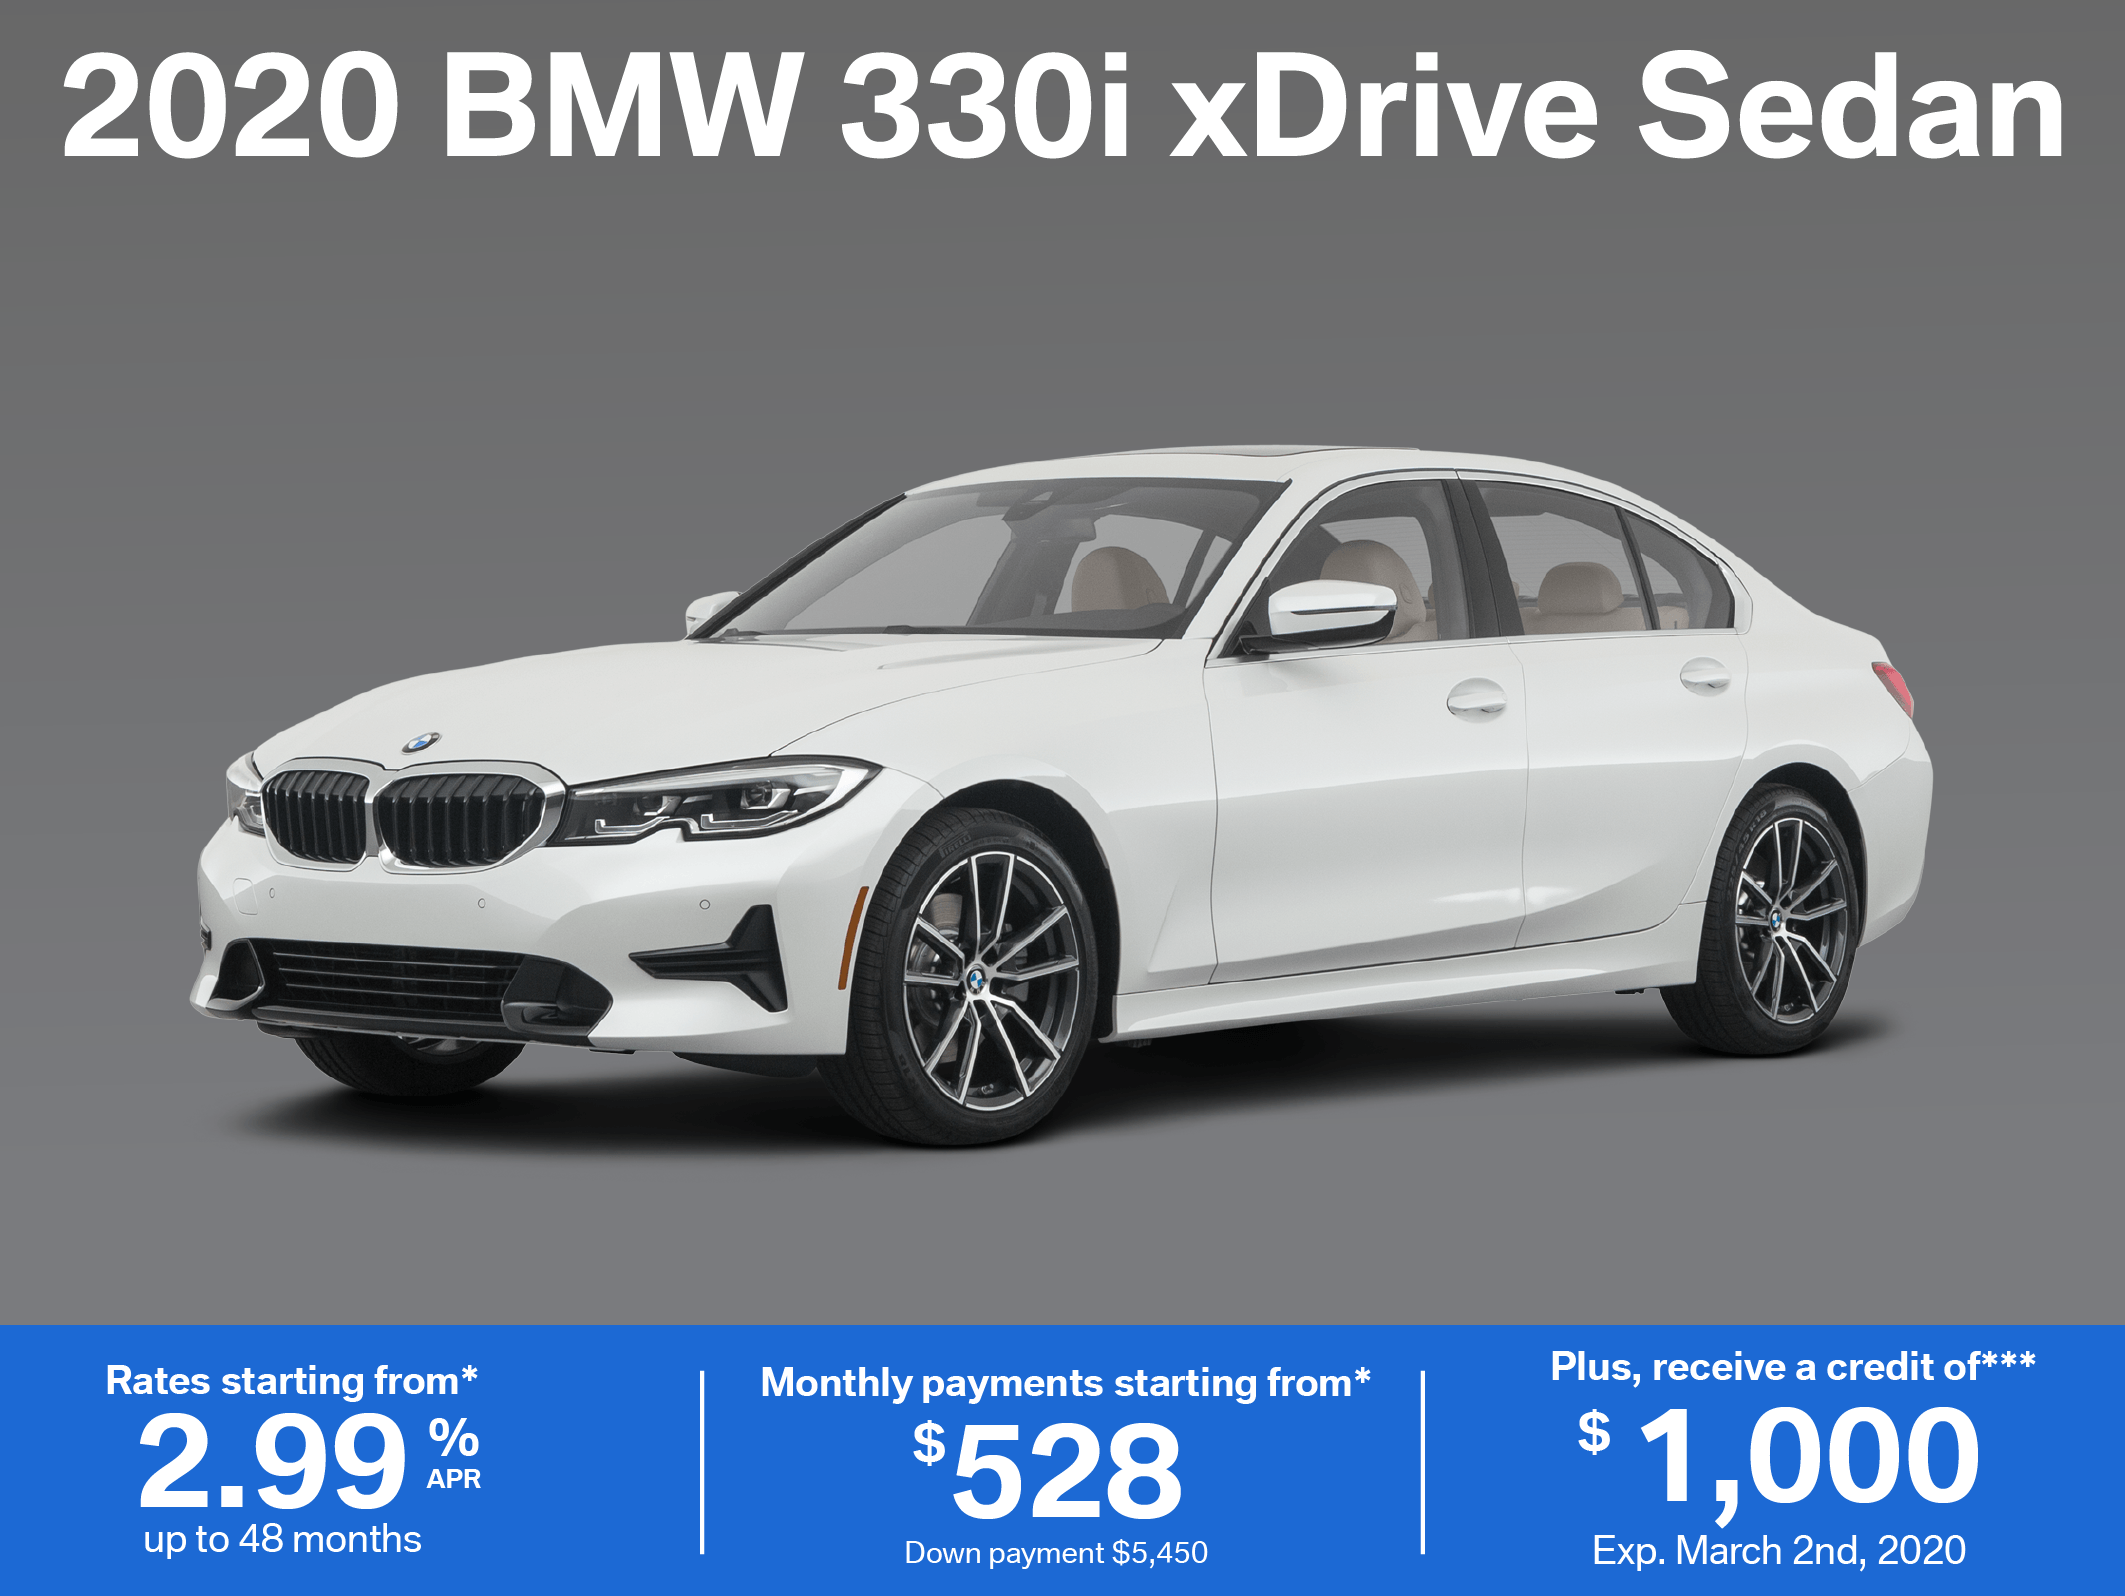 Lease the 2020 BMW 330i xDrive Sedan